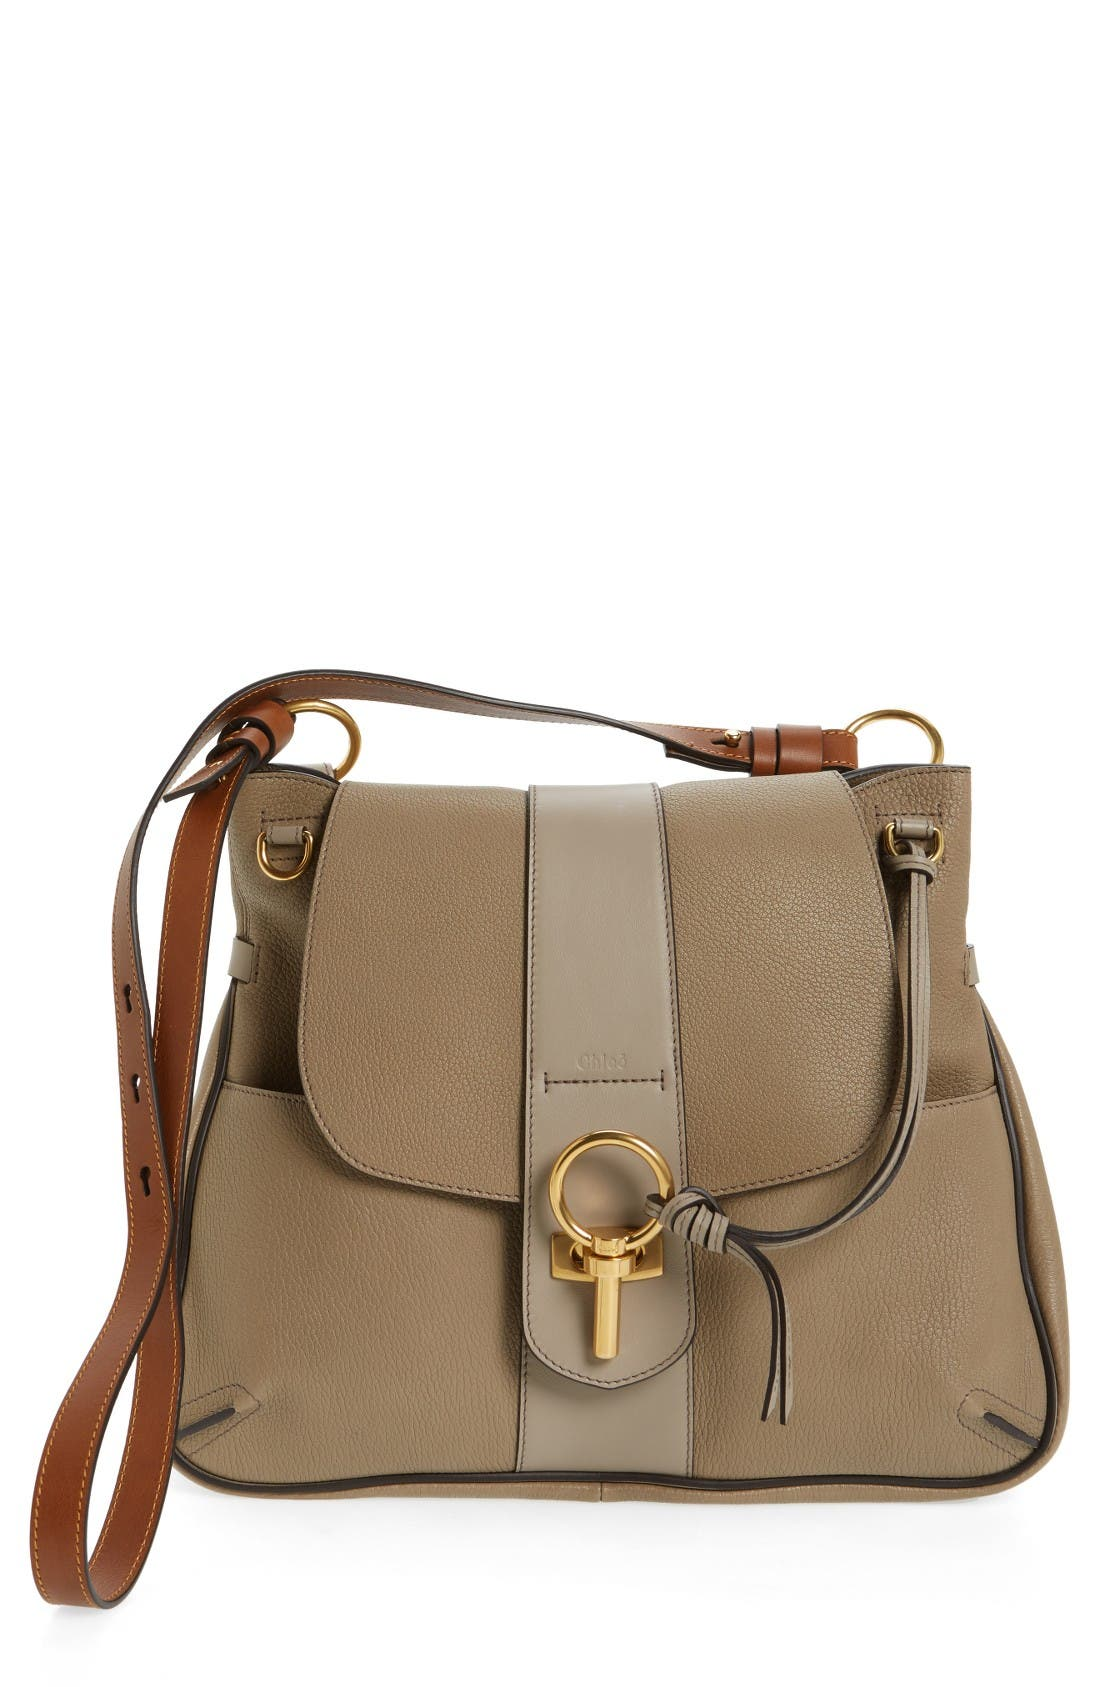 Chloé Medium Lexa Leather Shoulder Bag